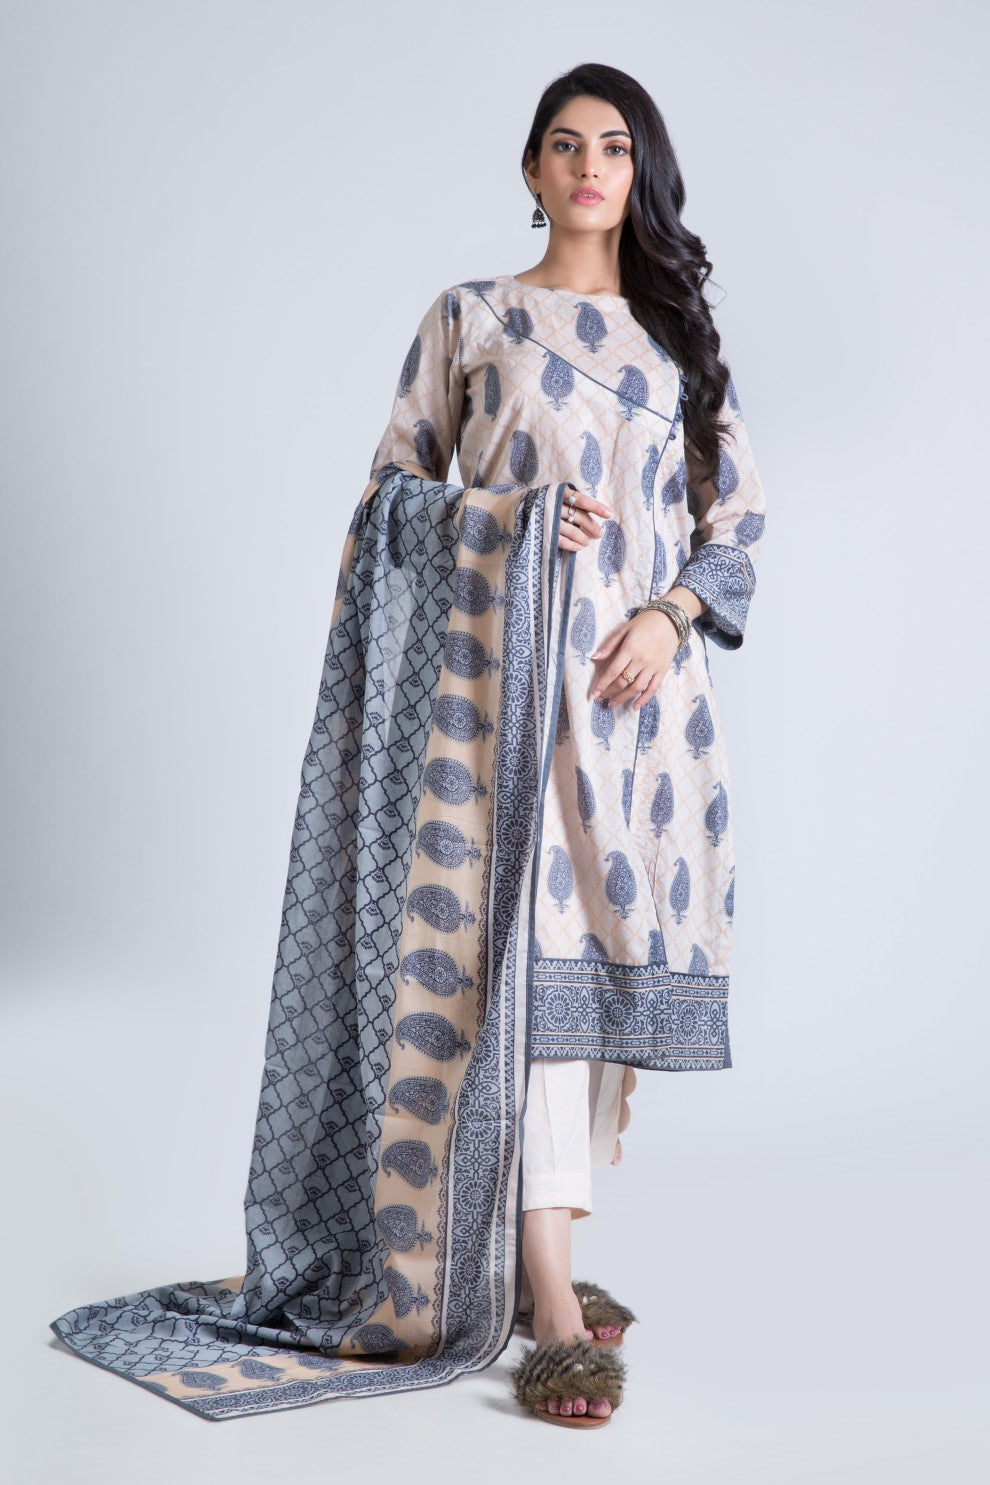 Bonanza Satrangi - Gray Ravish B - 3 Pc